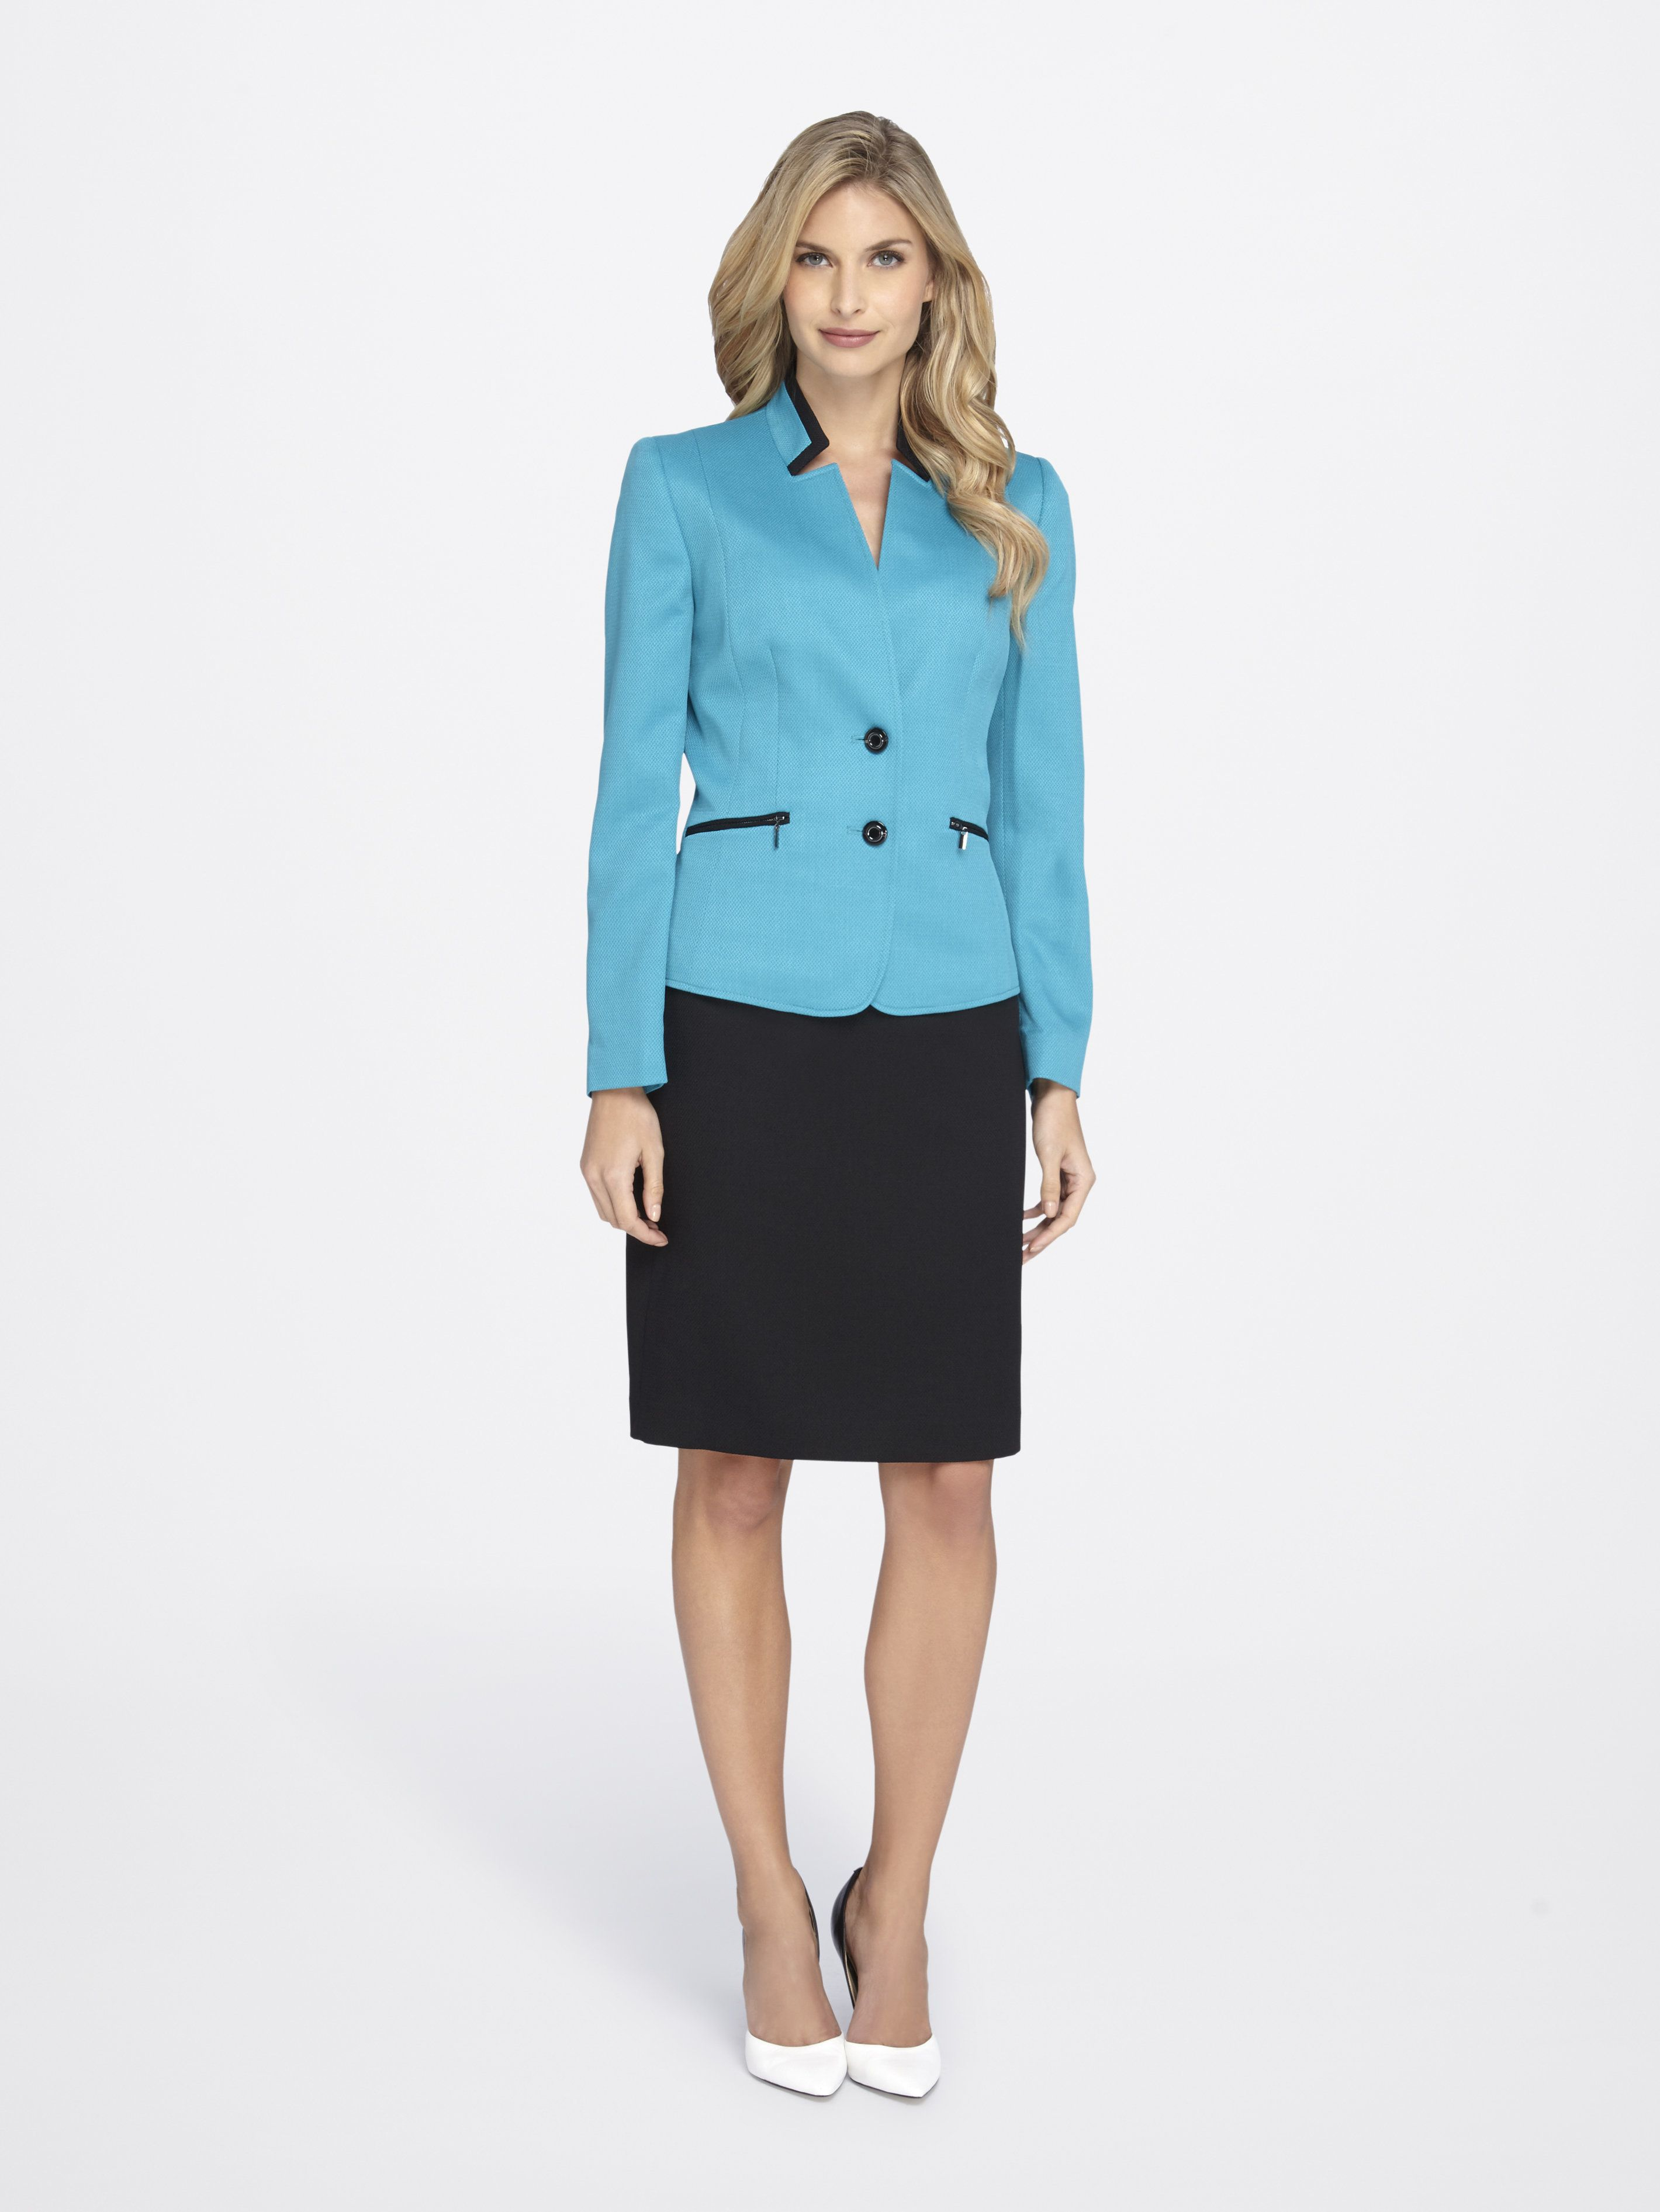 Piqué Skirt Suit - Tahari ASL | Wedding Consultant Attire ...